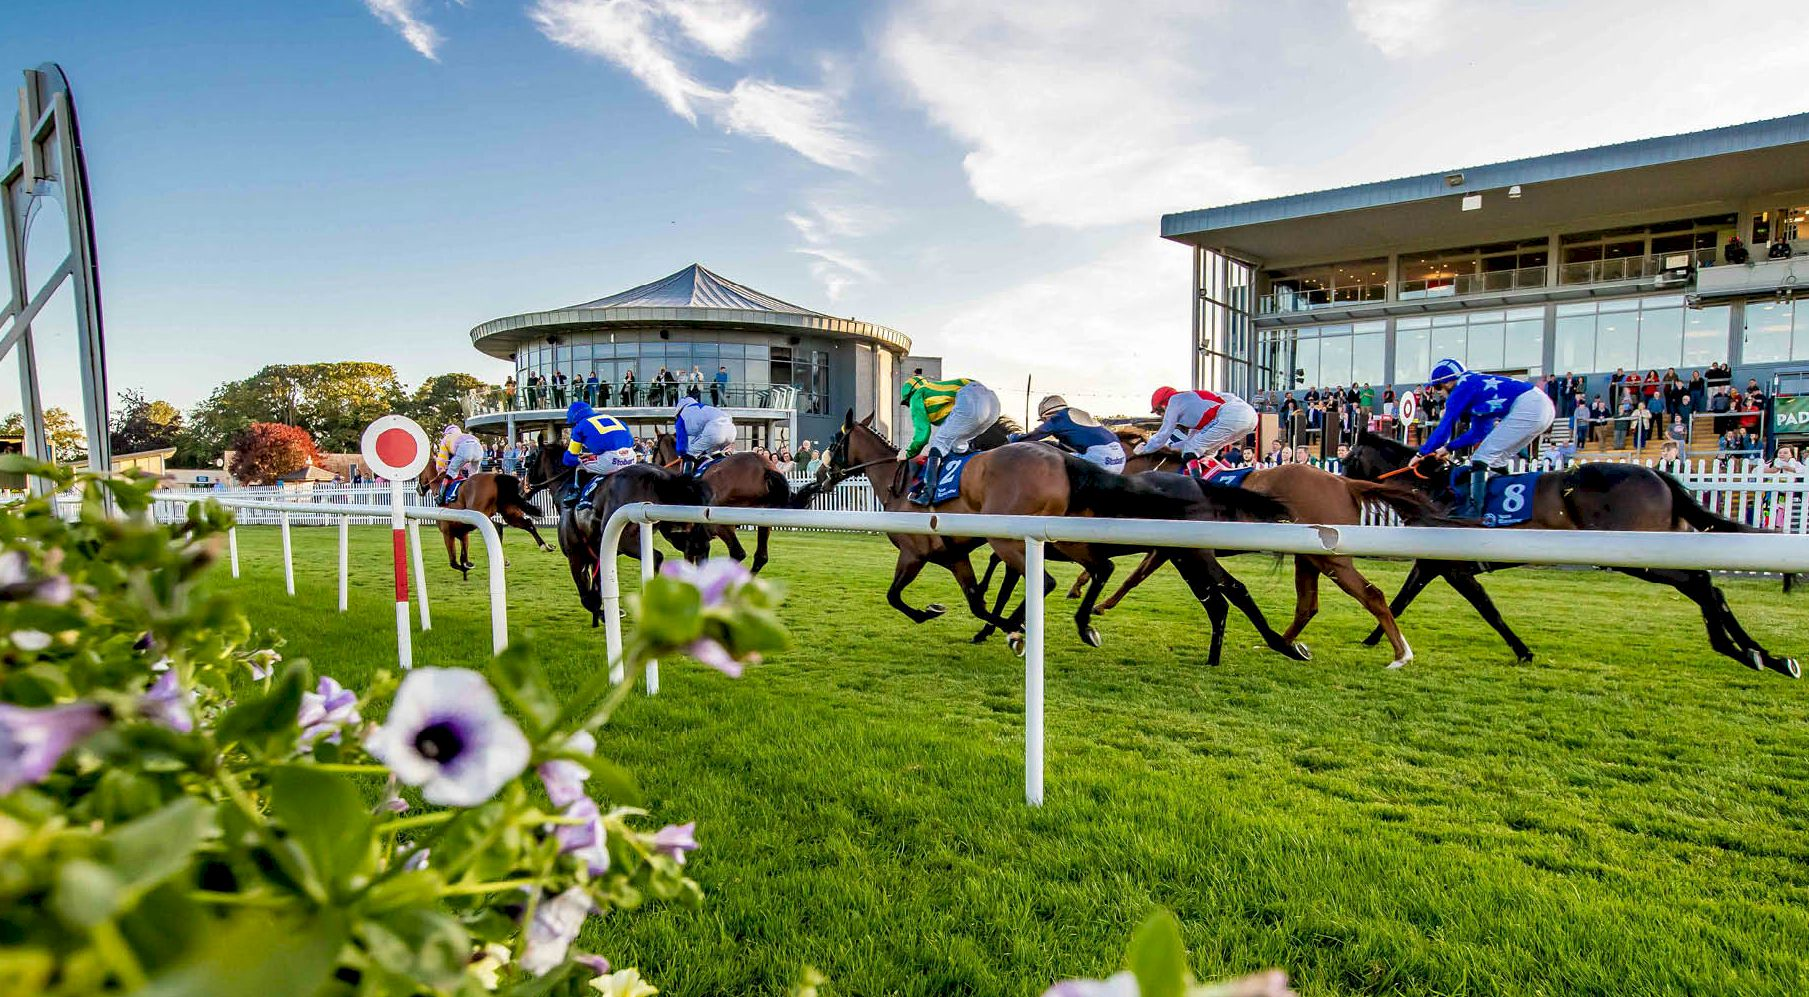 Naas Race and Stay Horse Racing Packages and Racing Breaks in Ireland